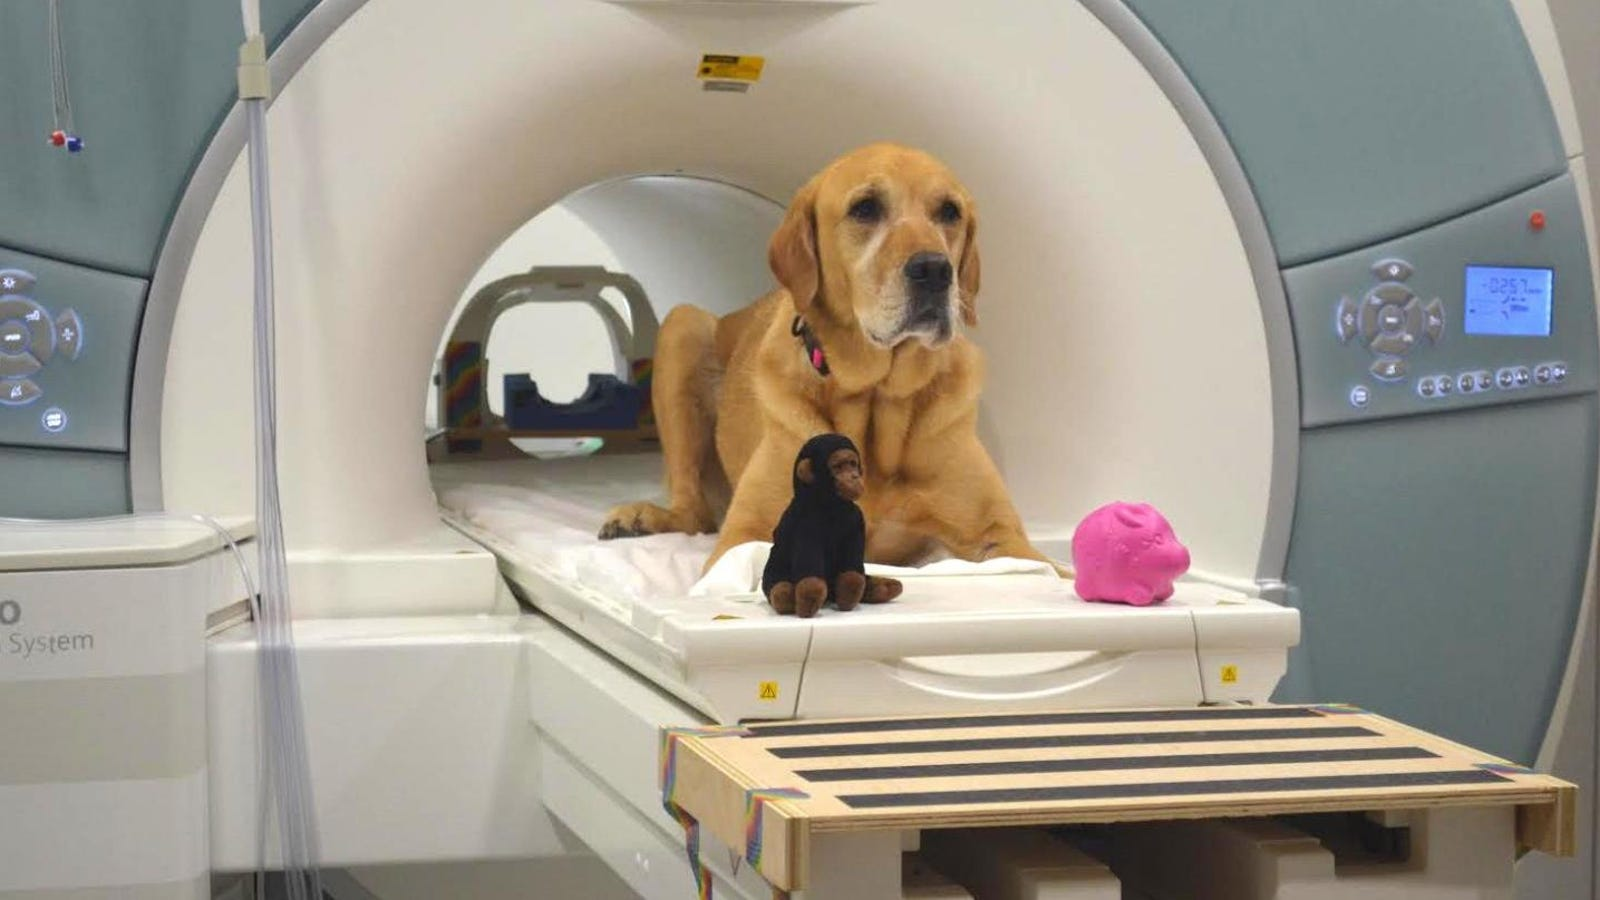 New Study Explores How Dogs Understand Human Language